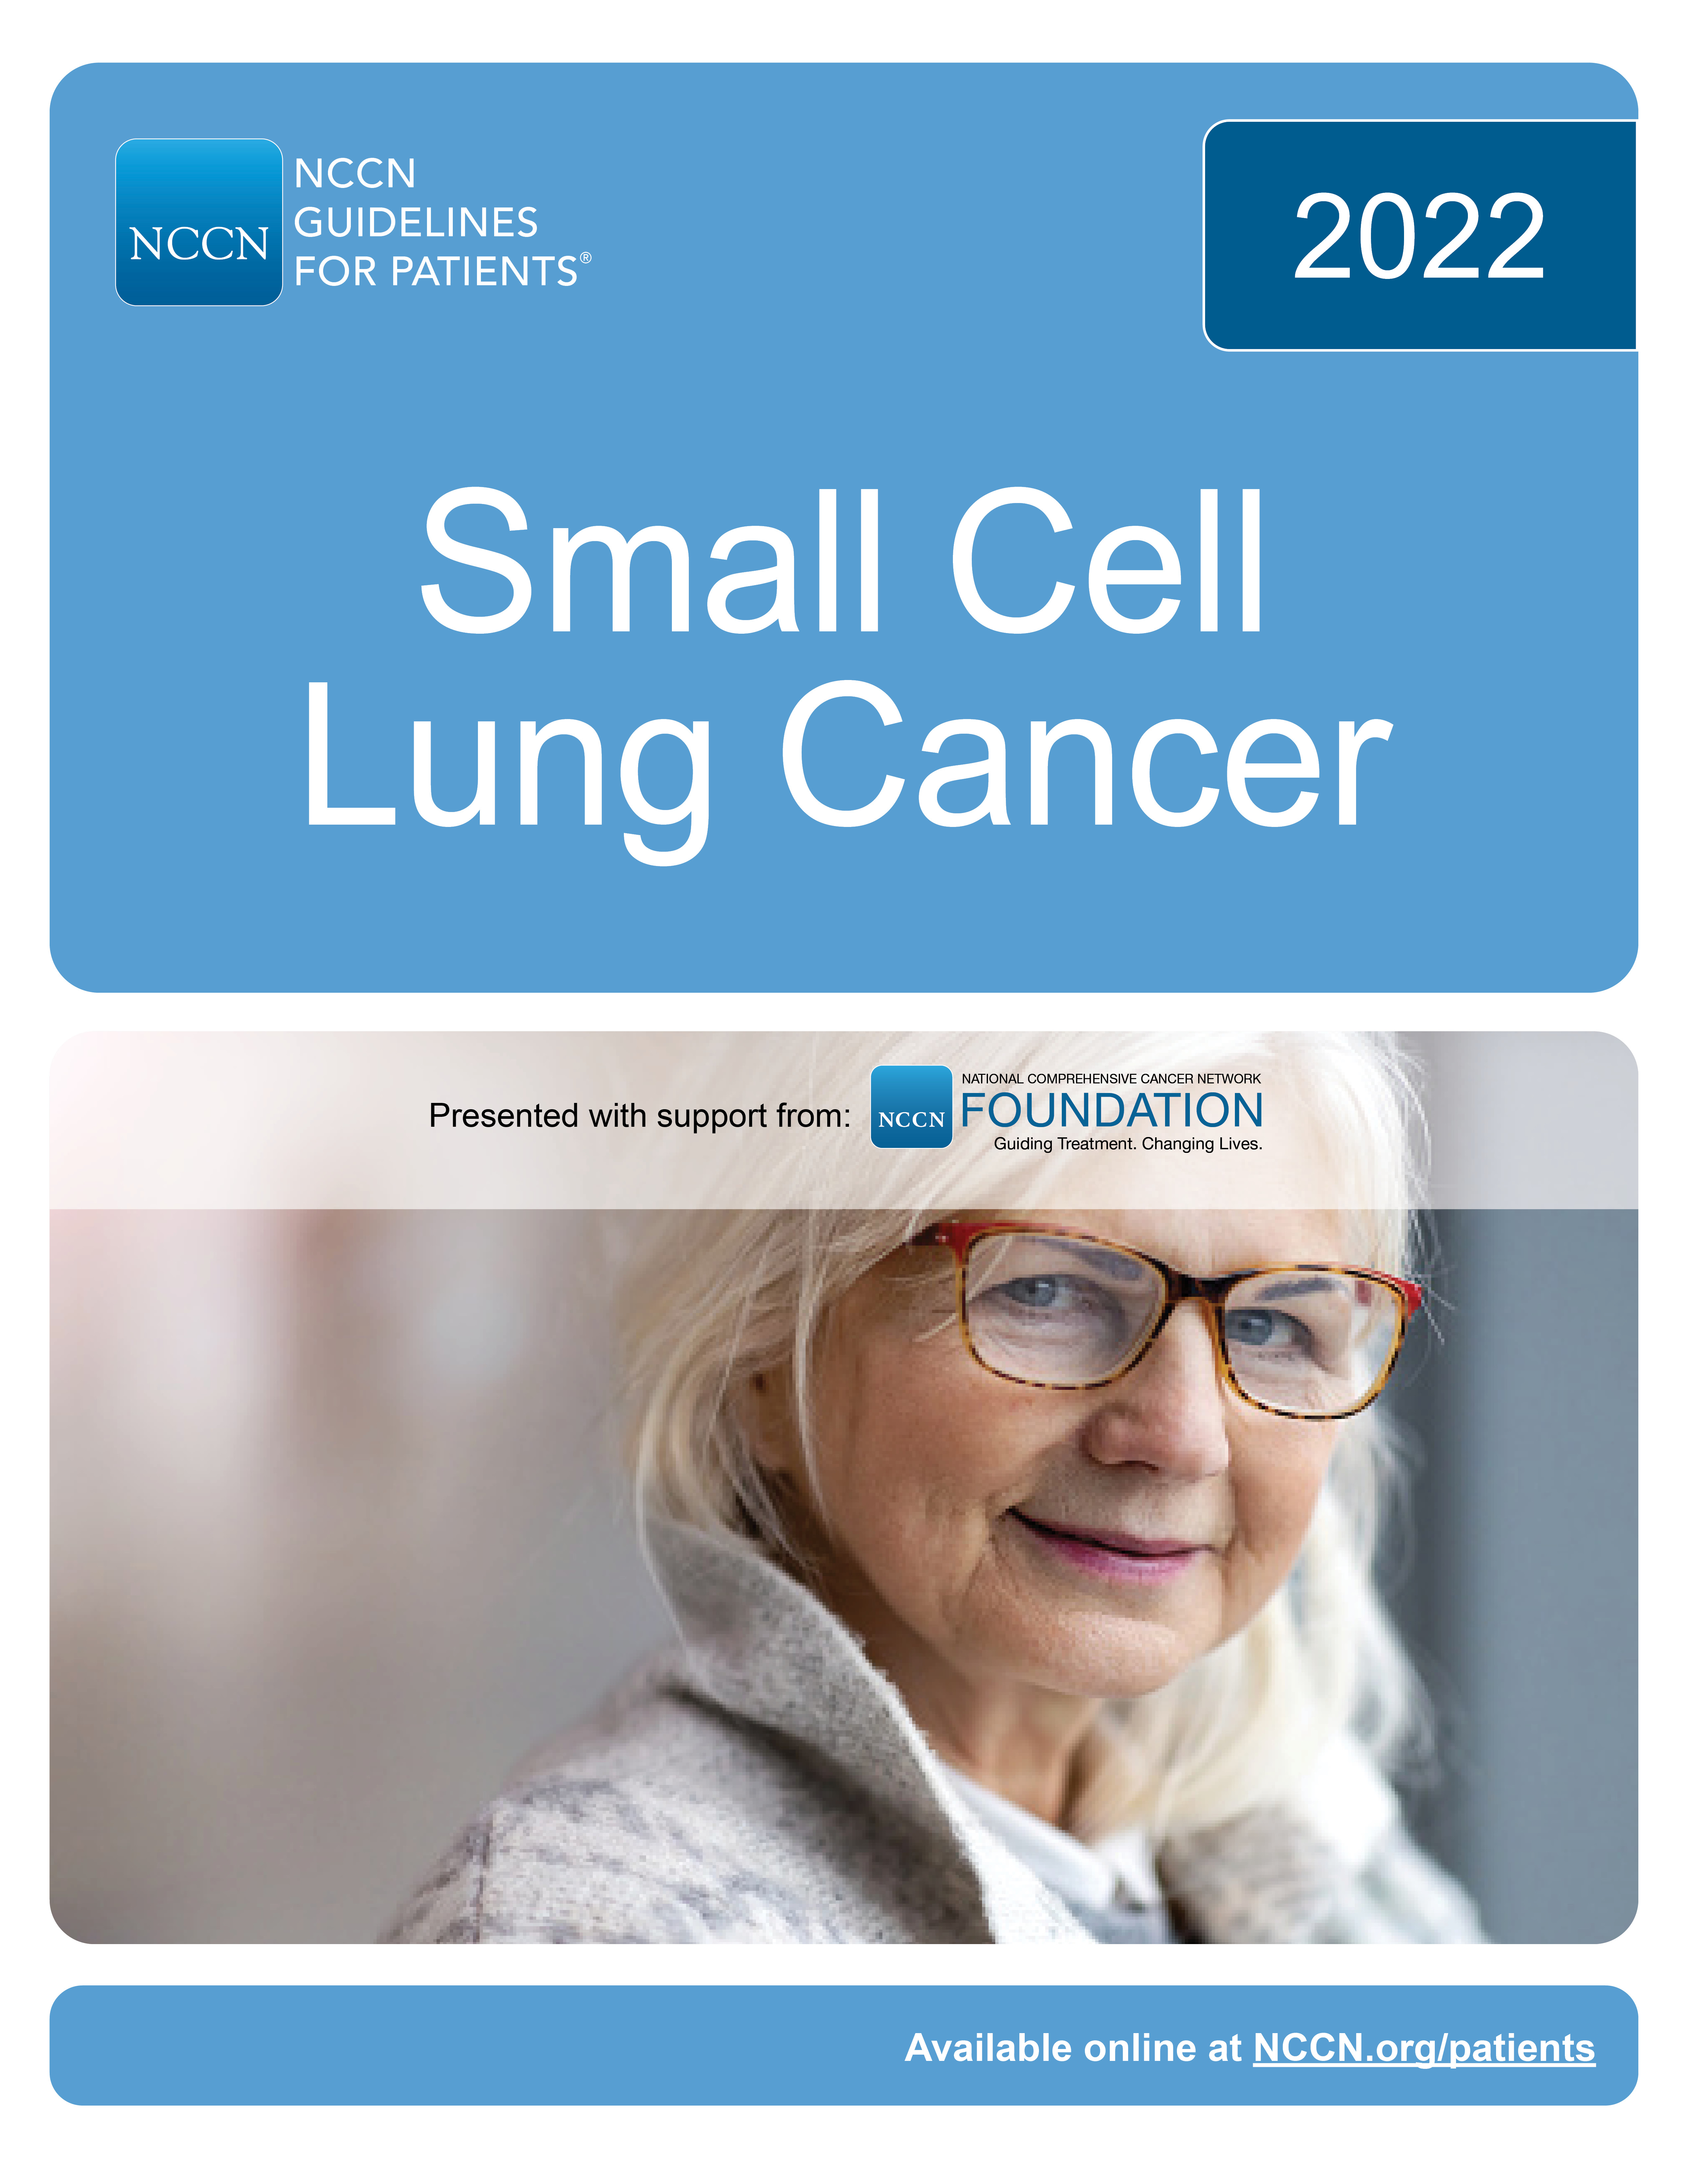 NCCN Guidelines for Patients: Small Cell Lung Cancer